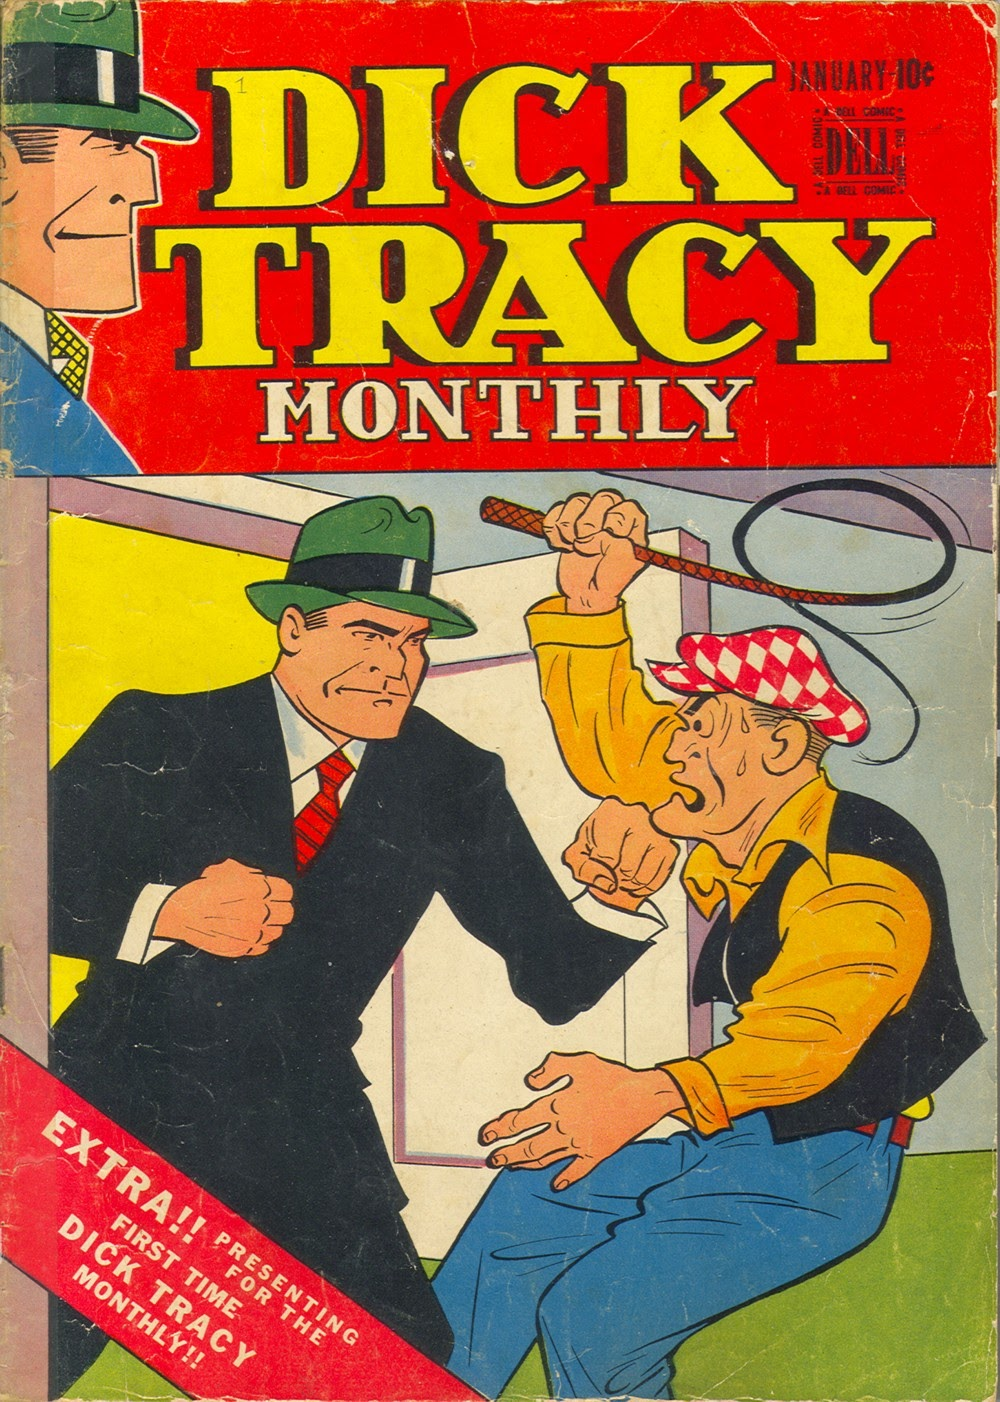 Dick Tracy Monthly 1 Page 1